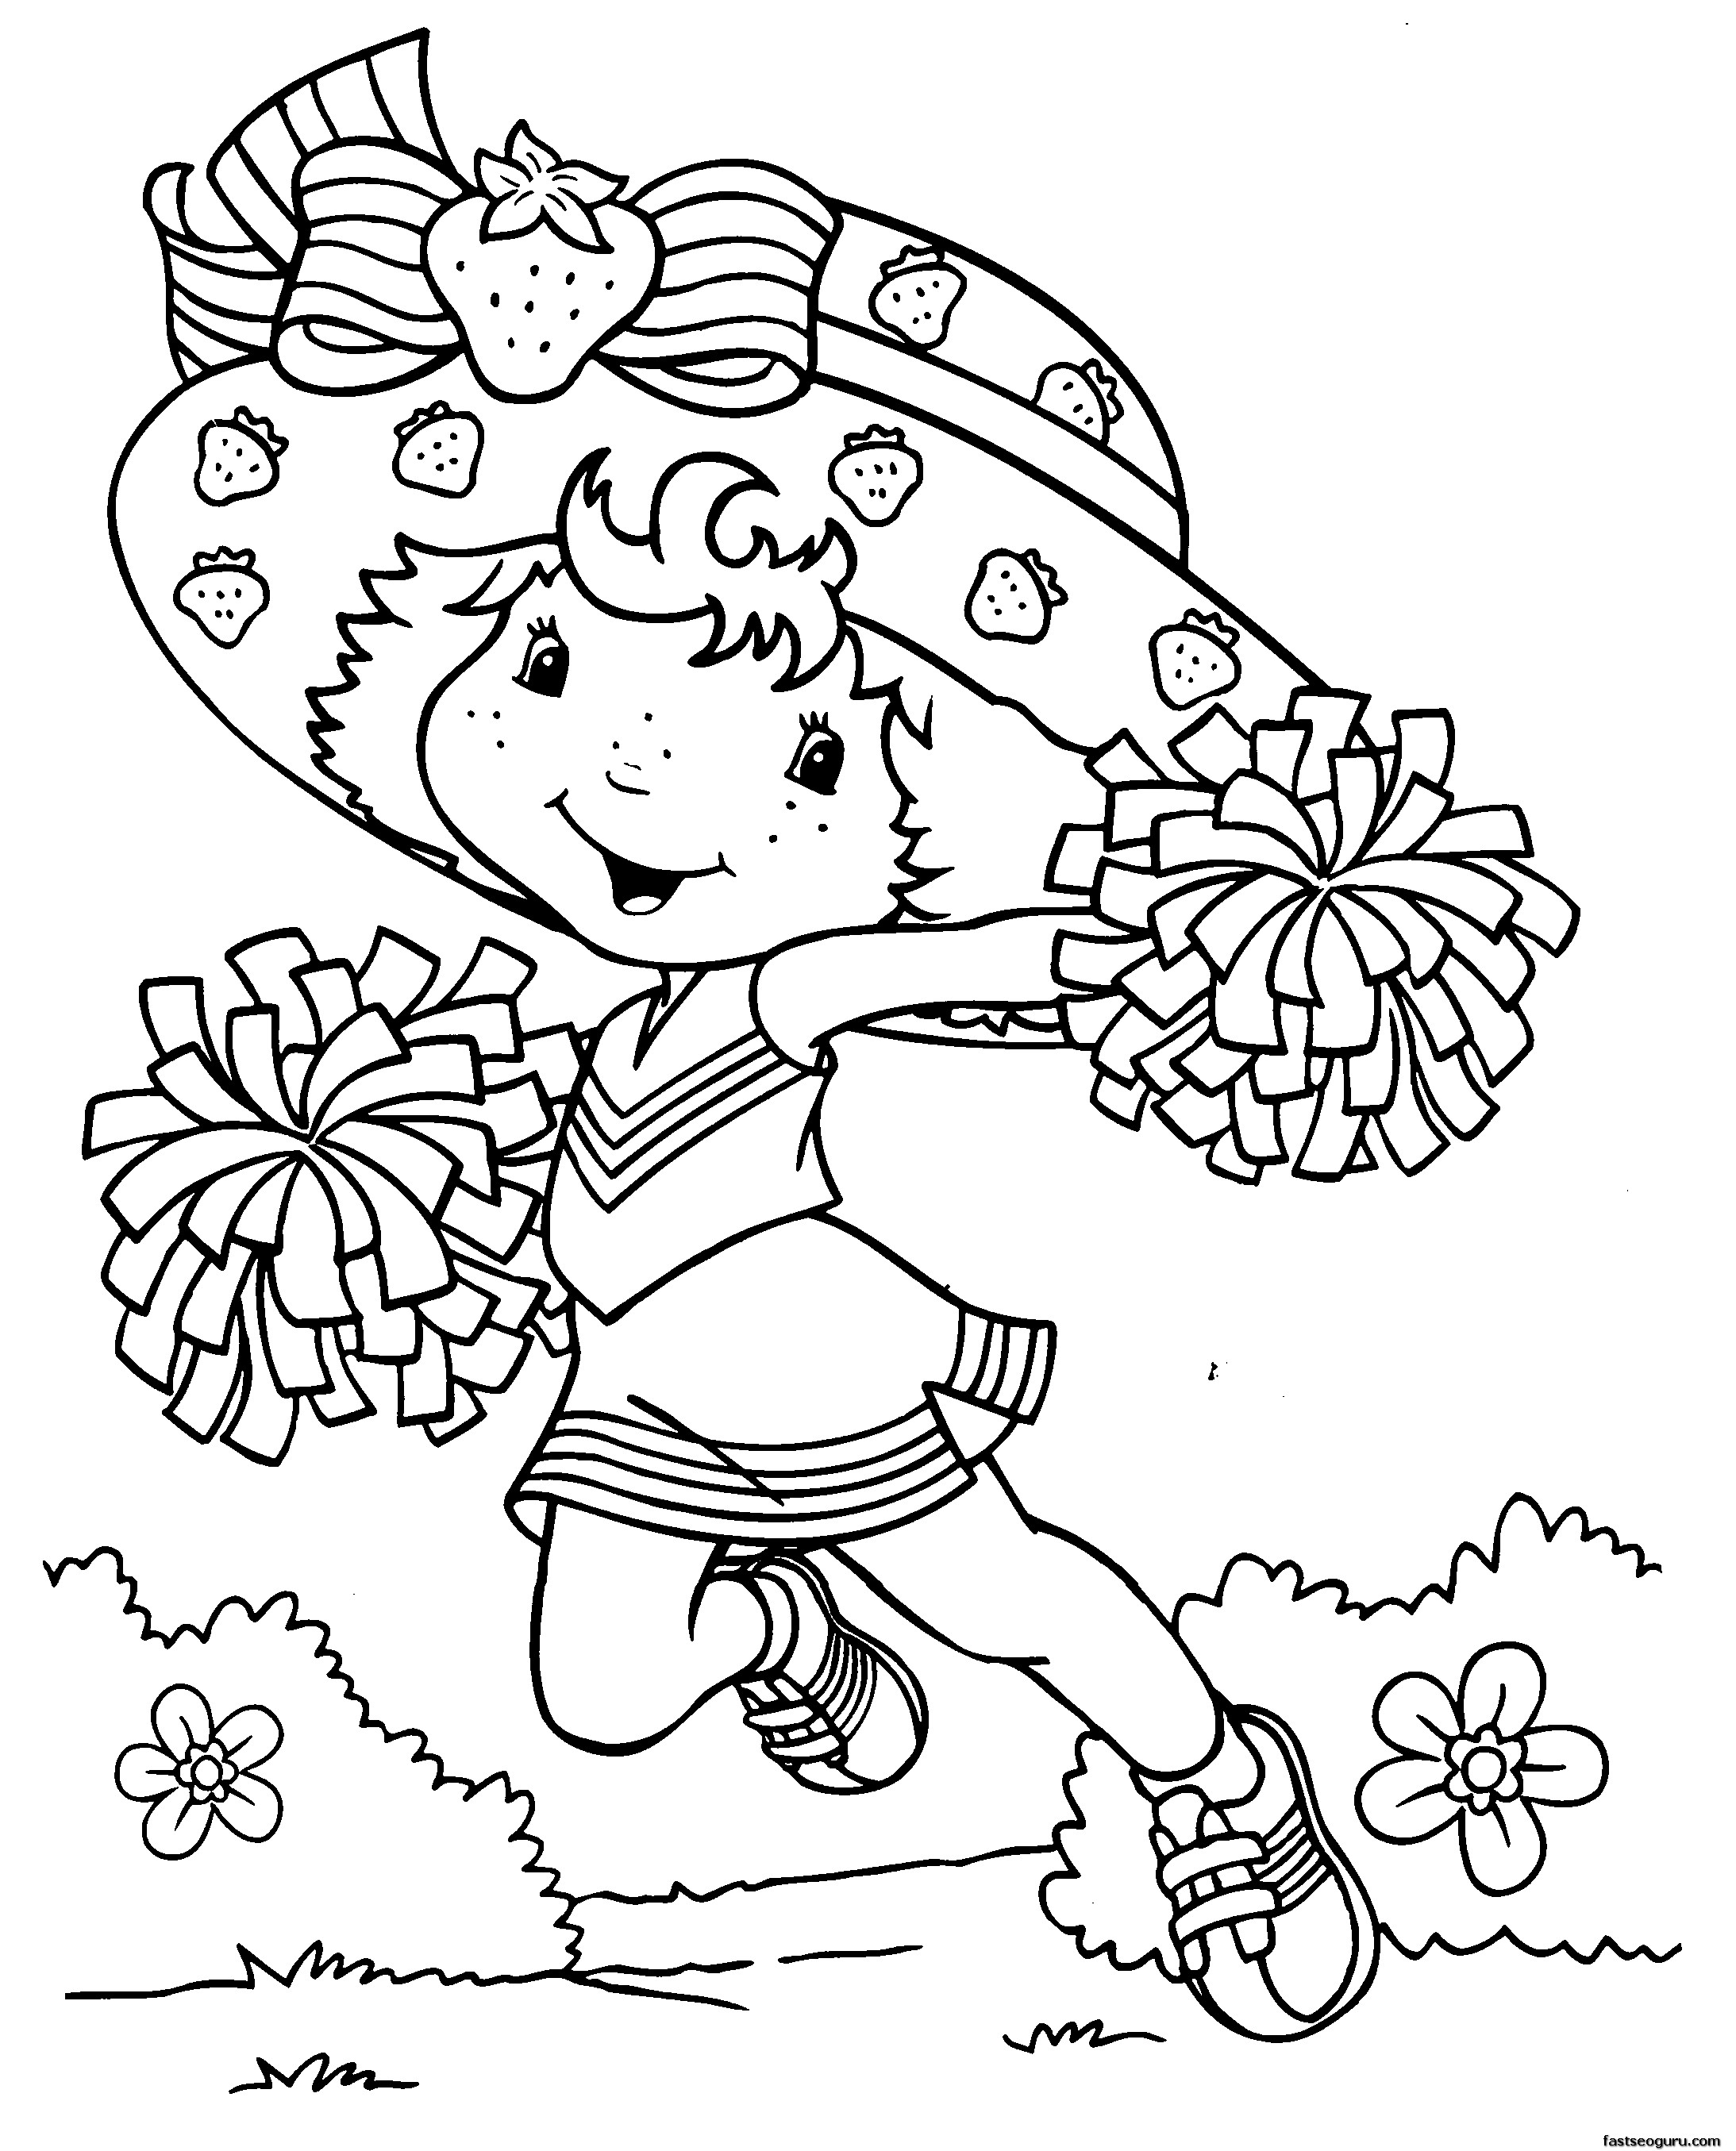 coloring pages for girls - Coloring Pages To Print For Girls